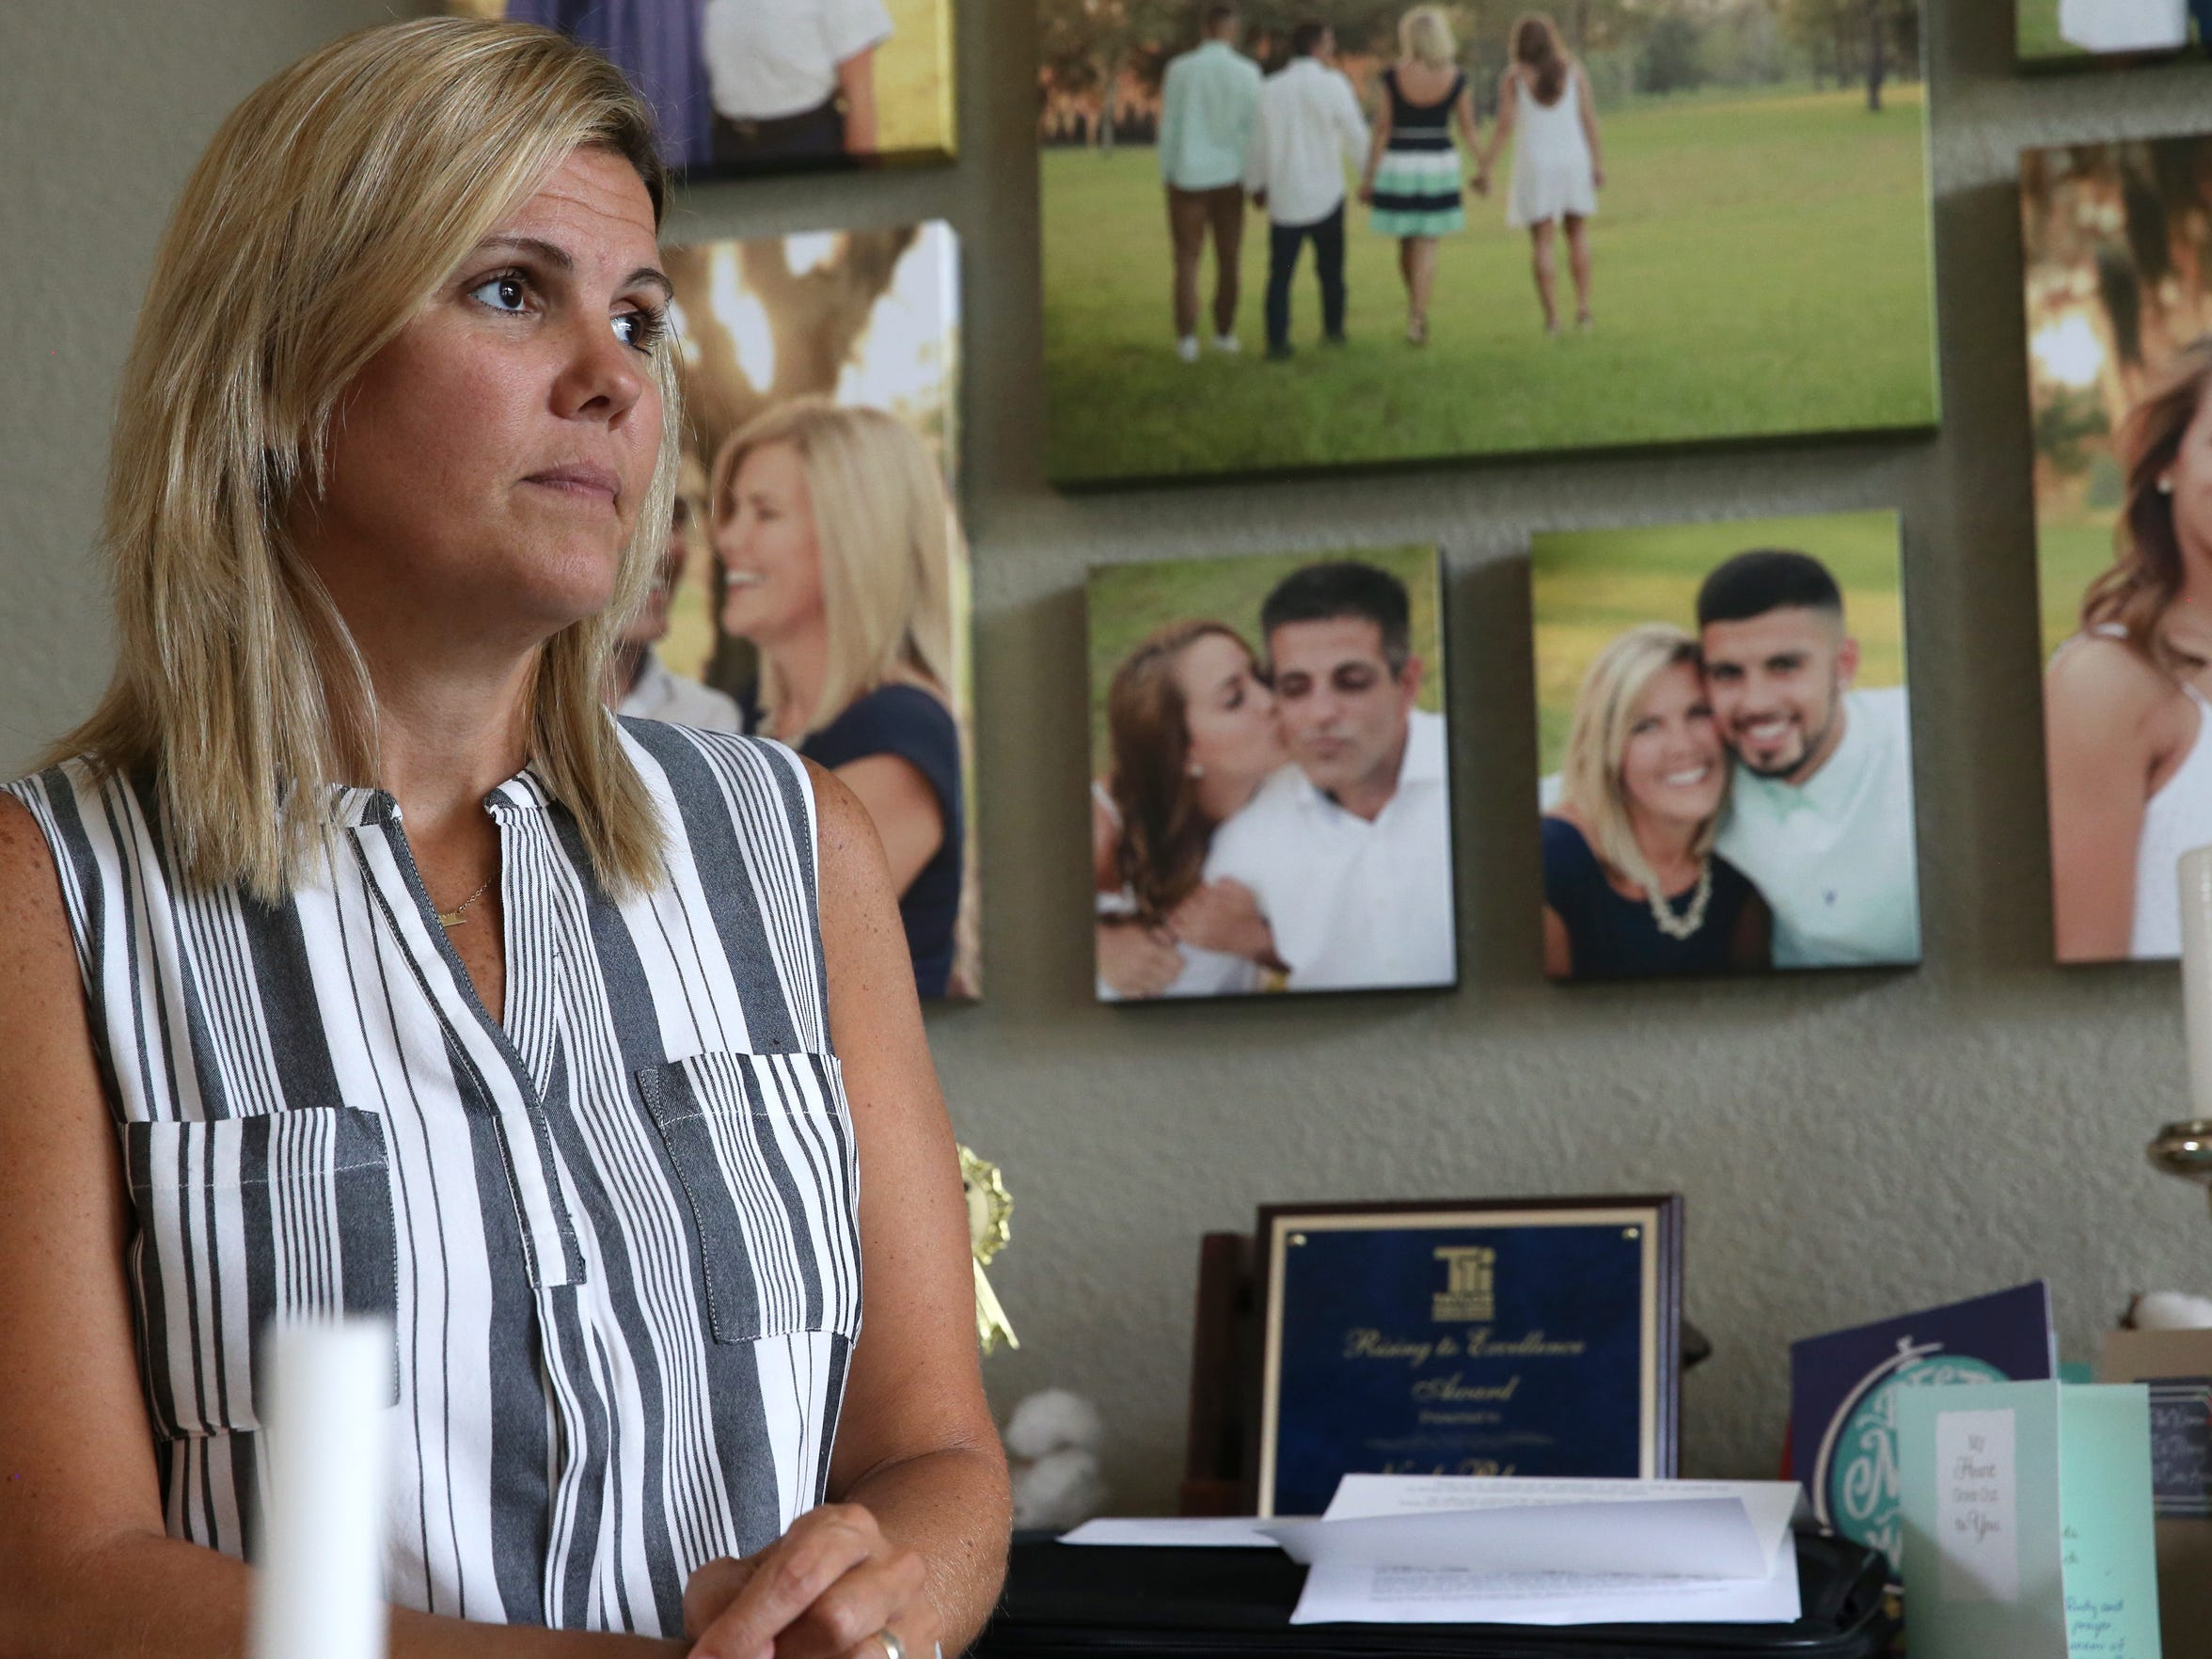 """Shelly Blanco stands in the dining room of the family home in Perry, Fla. on Friday, May 19, 2017. """"We are ready for Rudy to come home,"""" said Blanco of her husband who is being detained by Immigration and Customs Enforcement officials in Wakulla. """"We're ready for him not to be just a file sitting on someone's desk."""""""